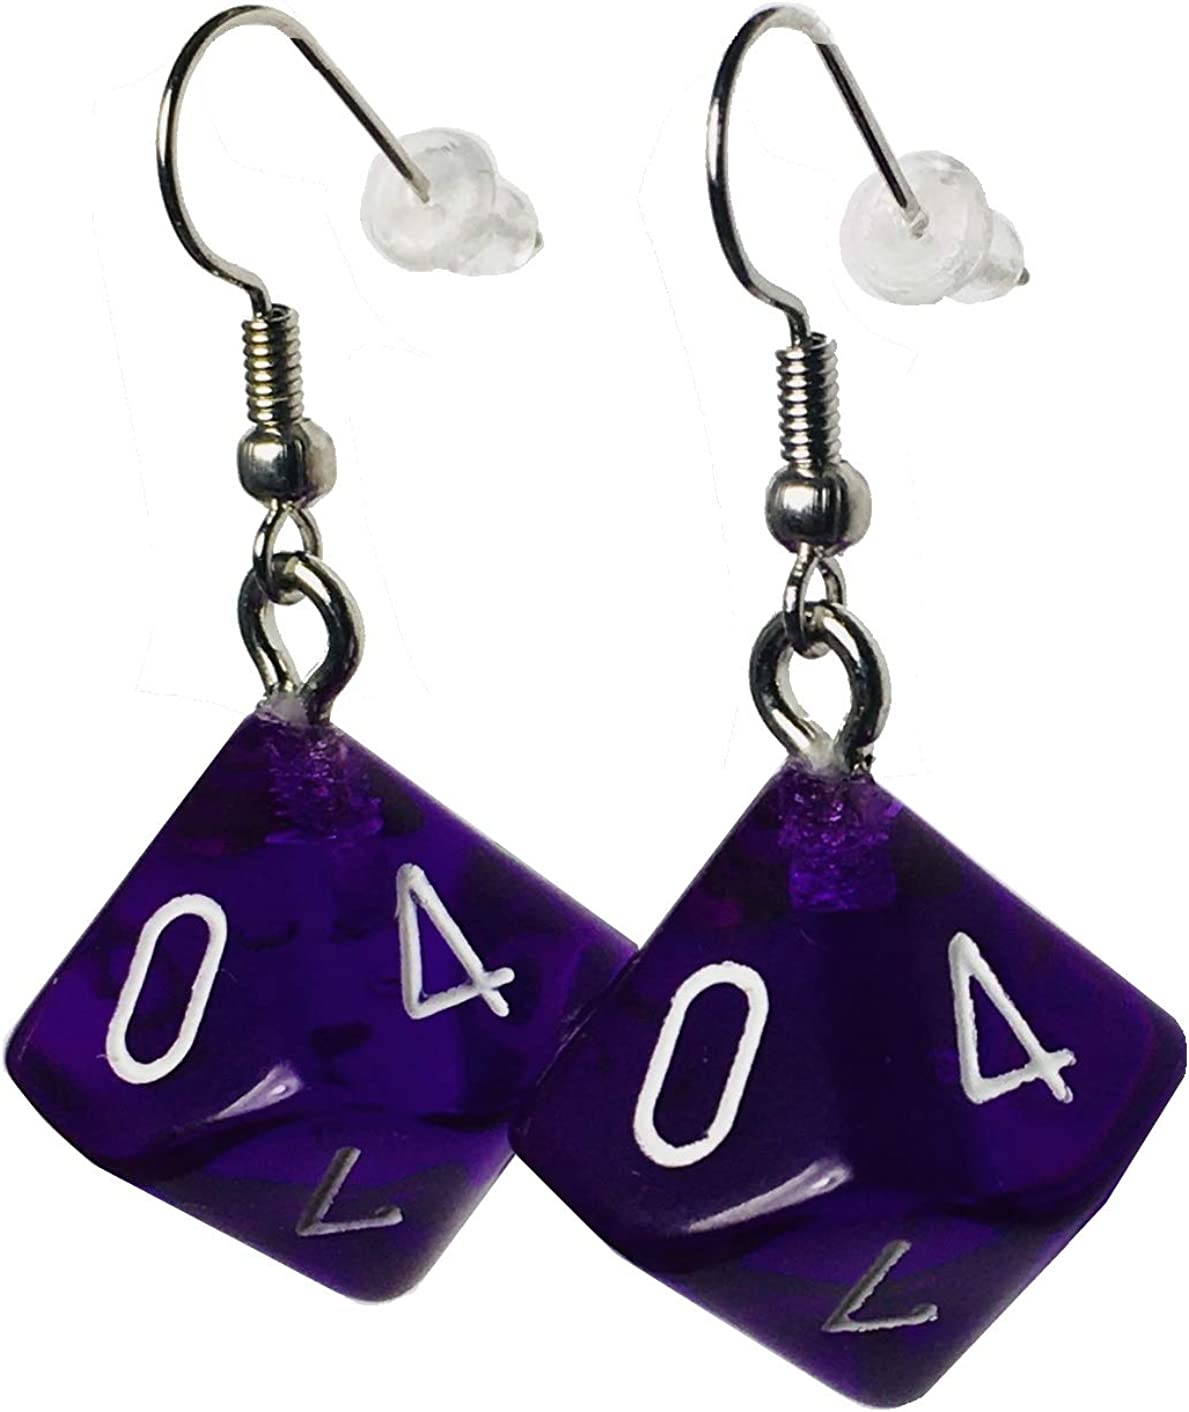 Hook with Earnuts 5 Colors Available d20 20-Sided Polyhedral Dice Earrings